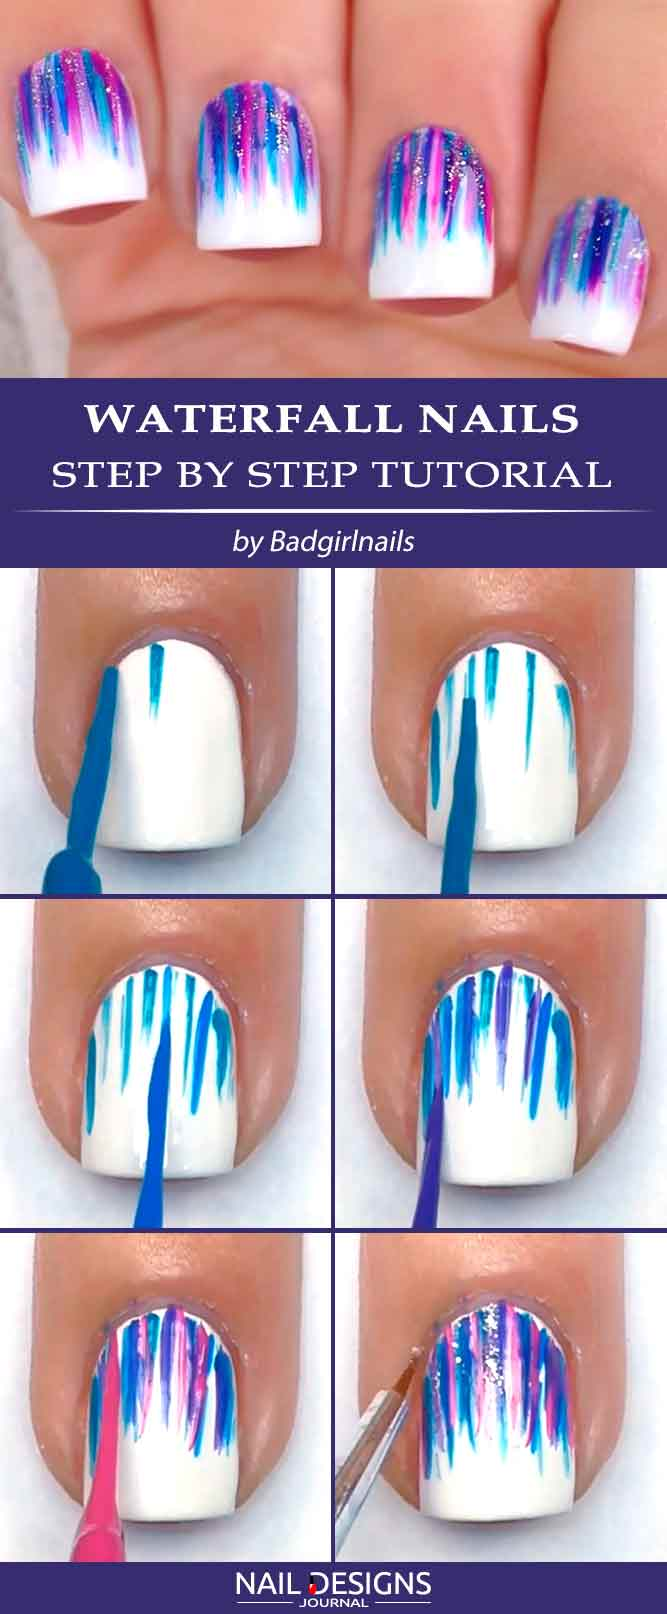 Waterfall Nails Step By Step Tutorial